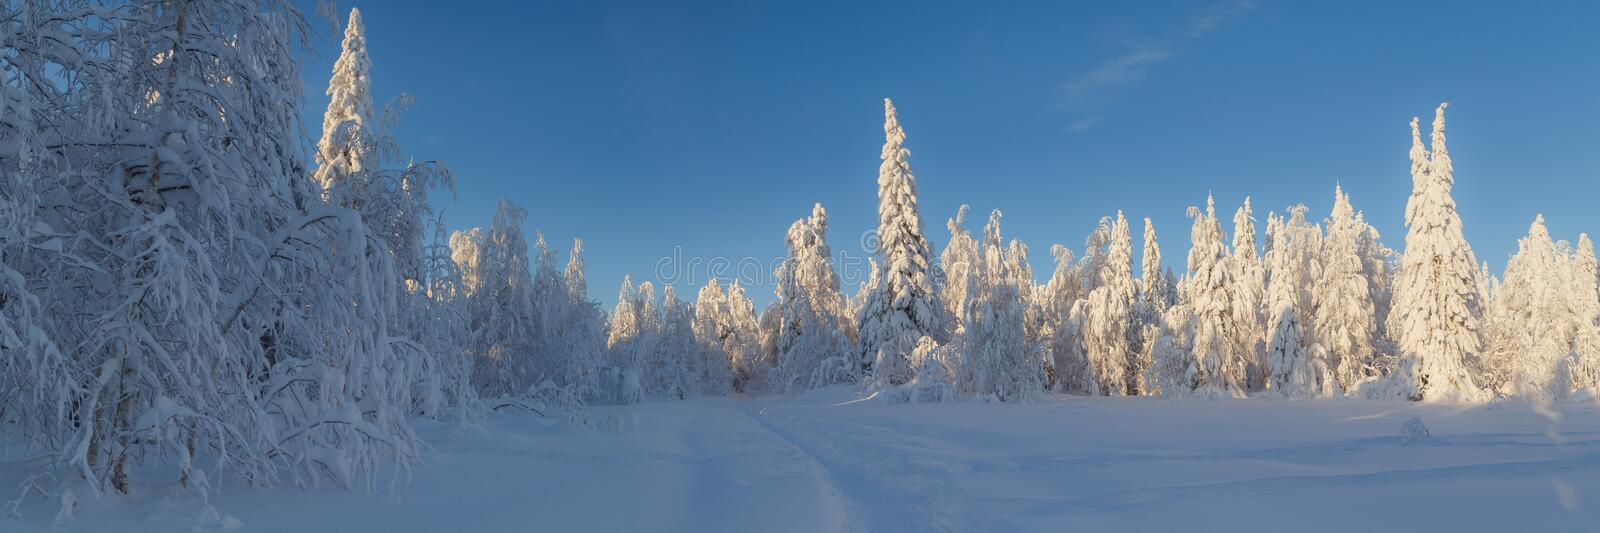 Download Sunny Day In Winter Forest, Ural Mountains, Winter Forest, Russian Natu Stock Photo - Image: 83700096